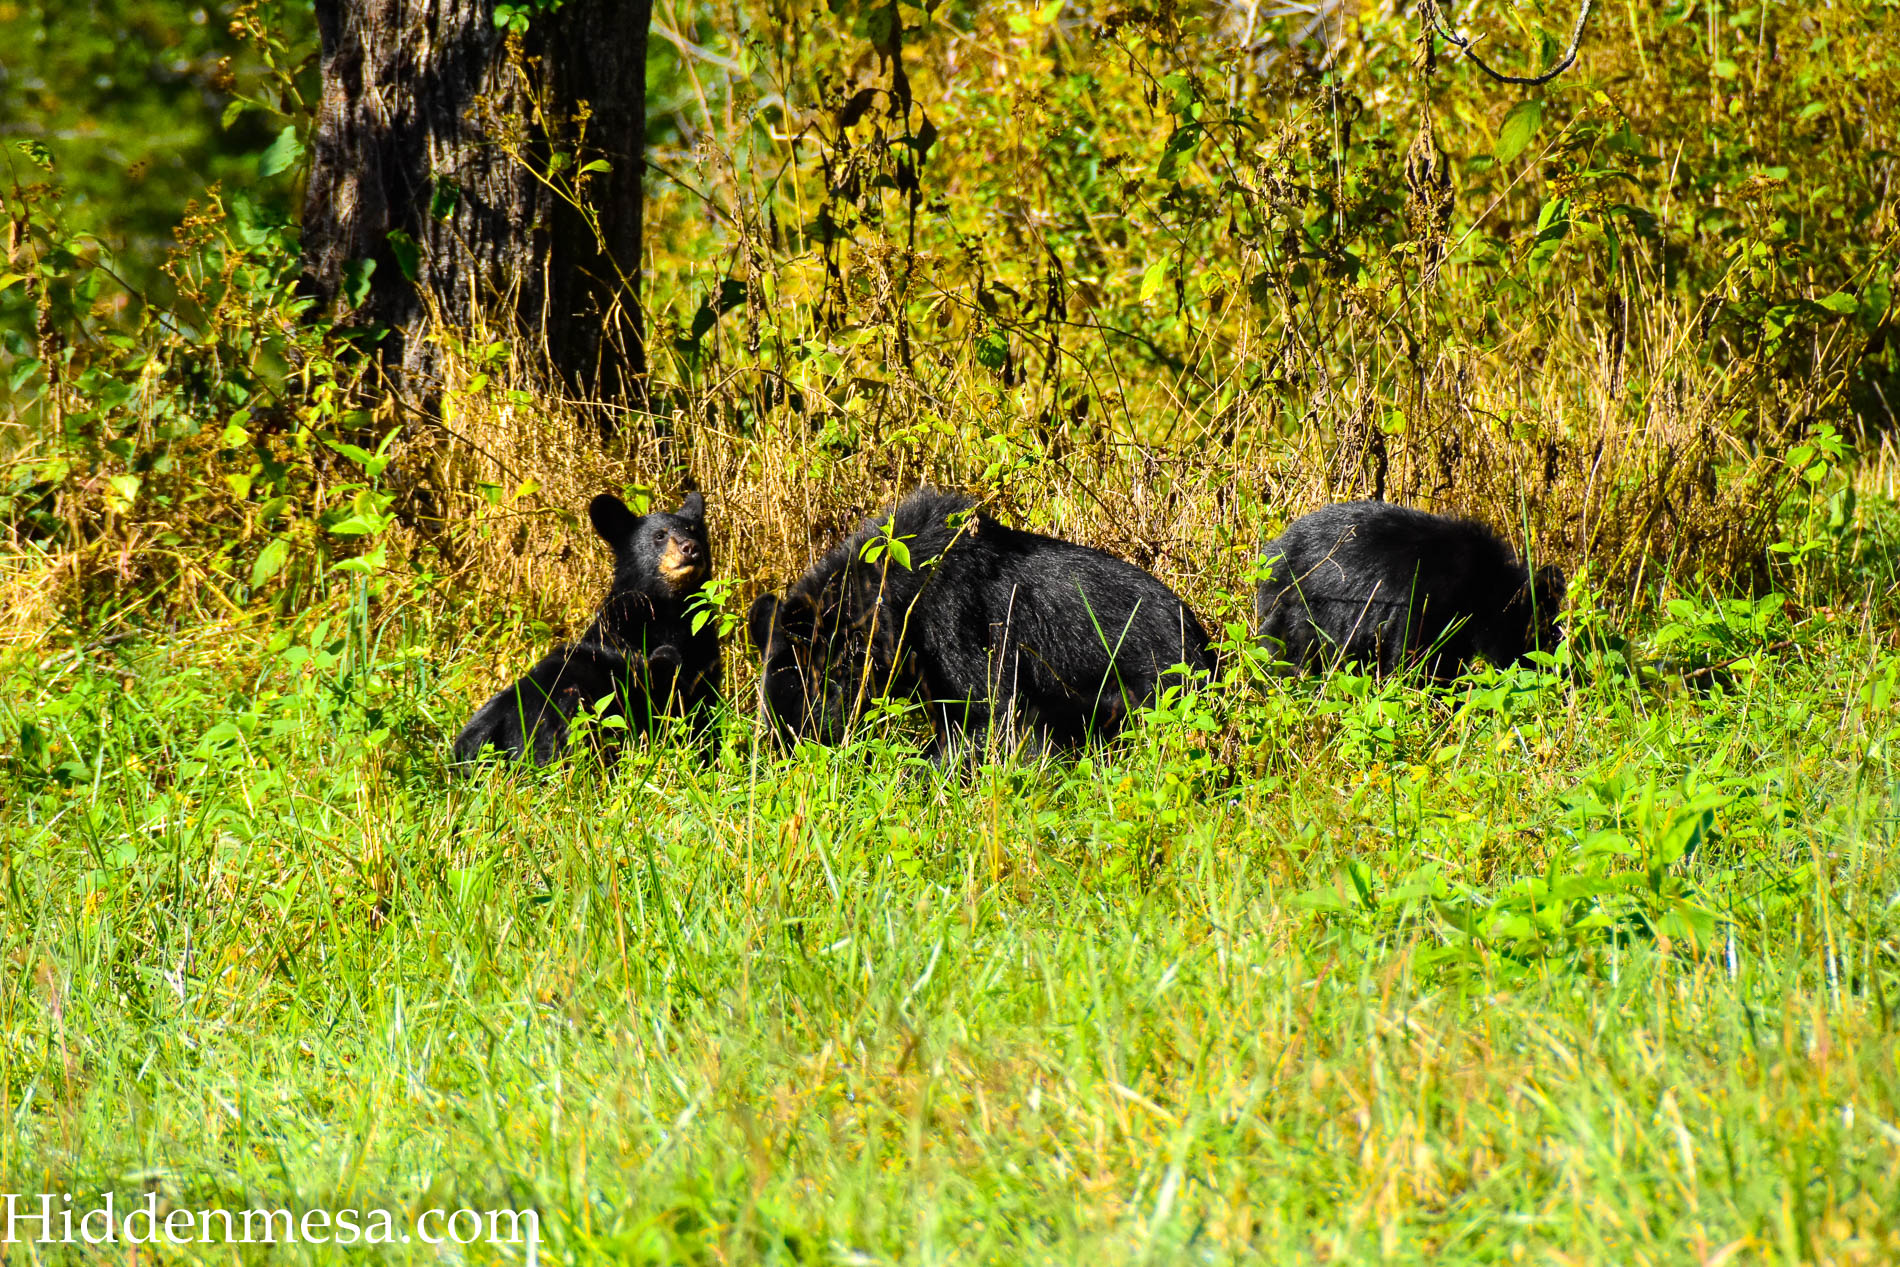 Bears in a field